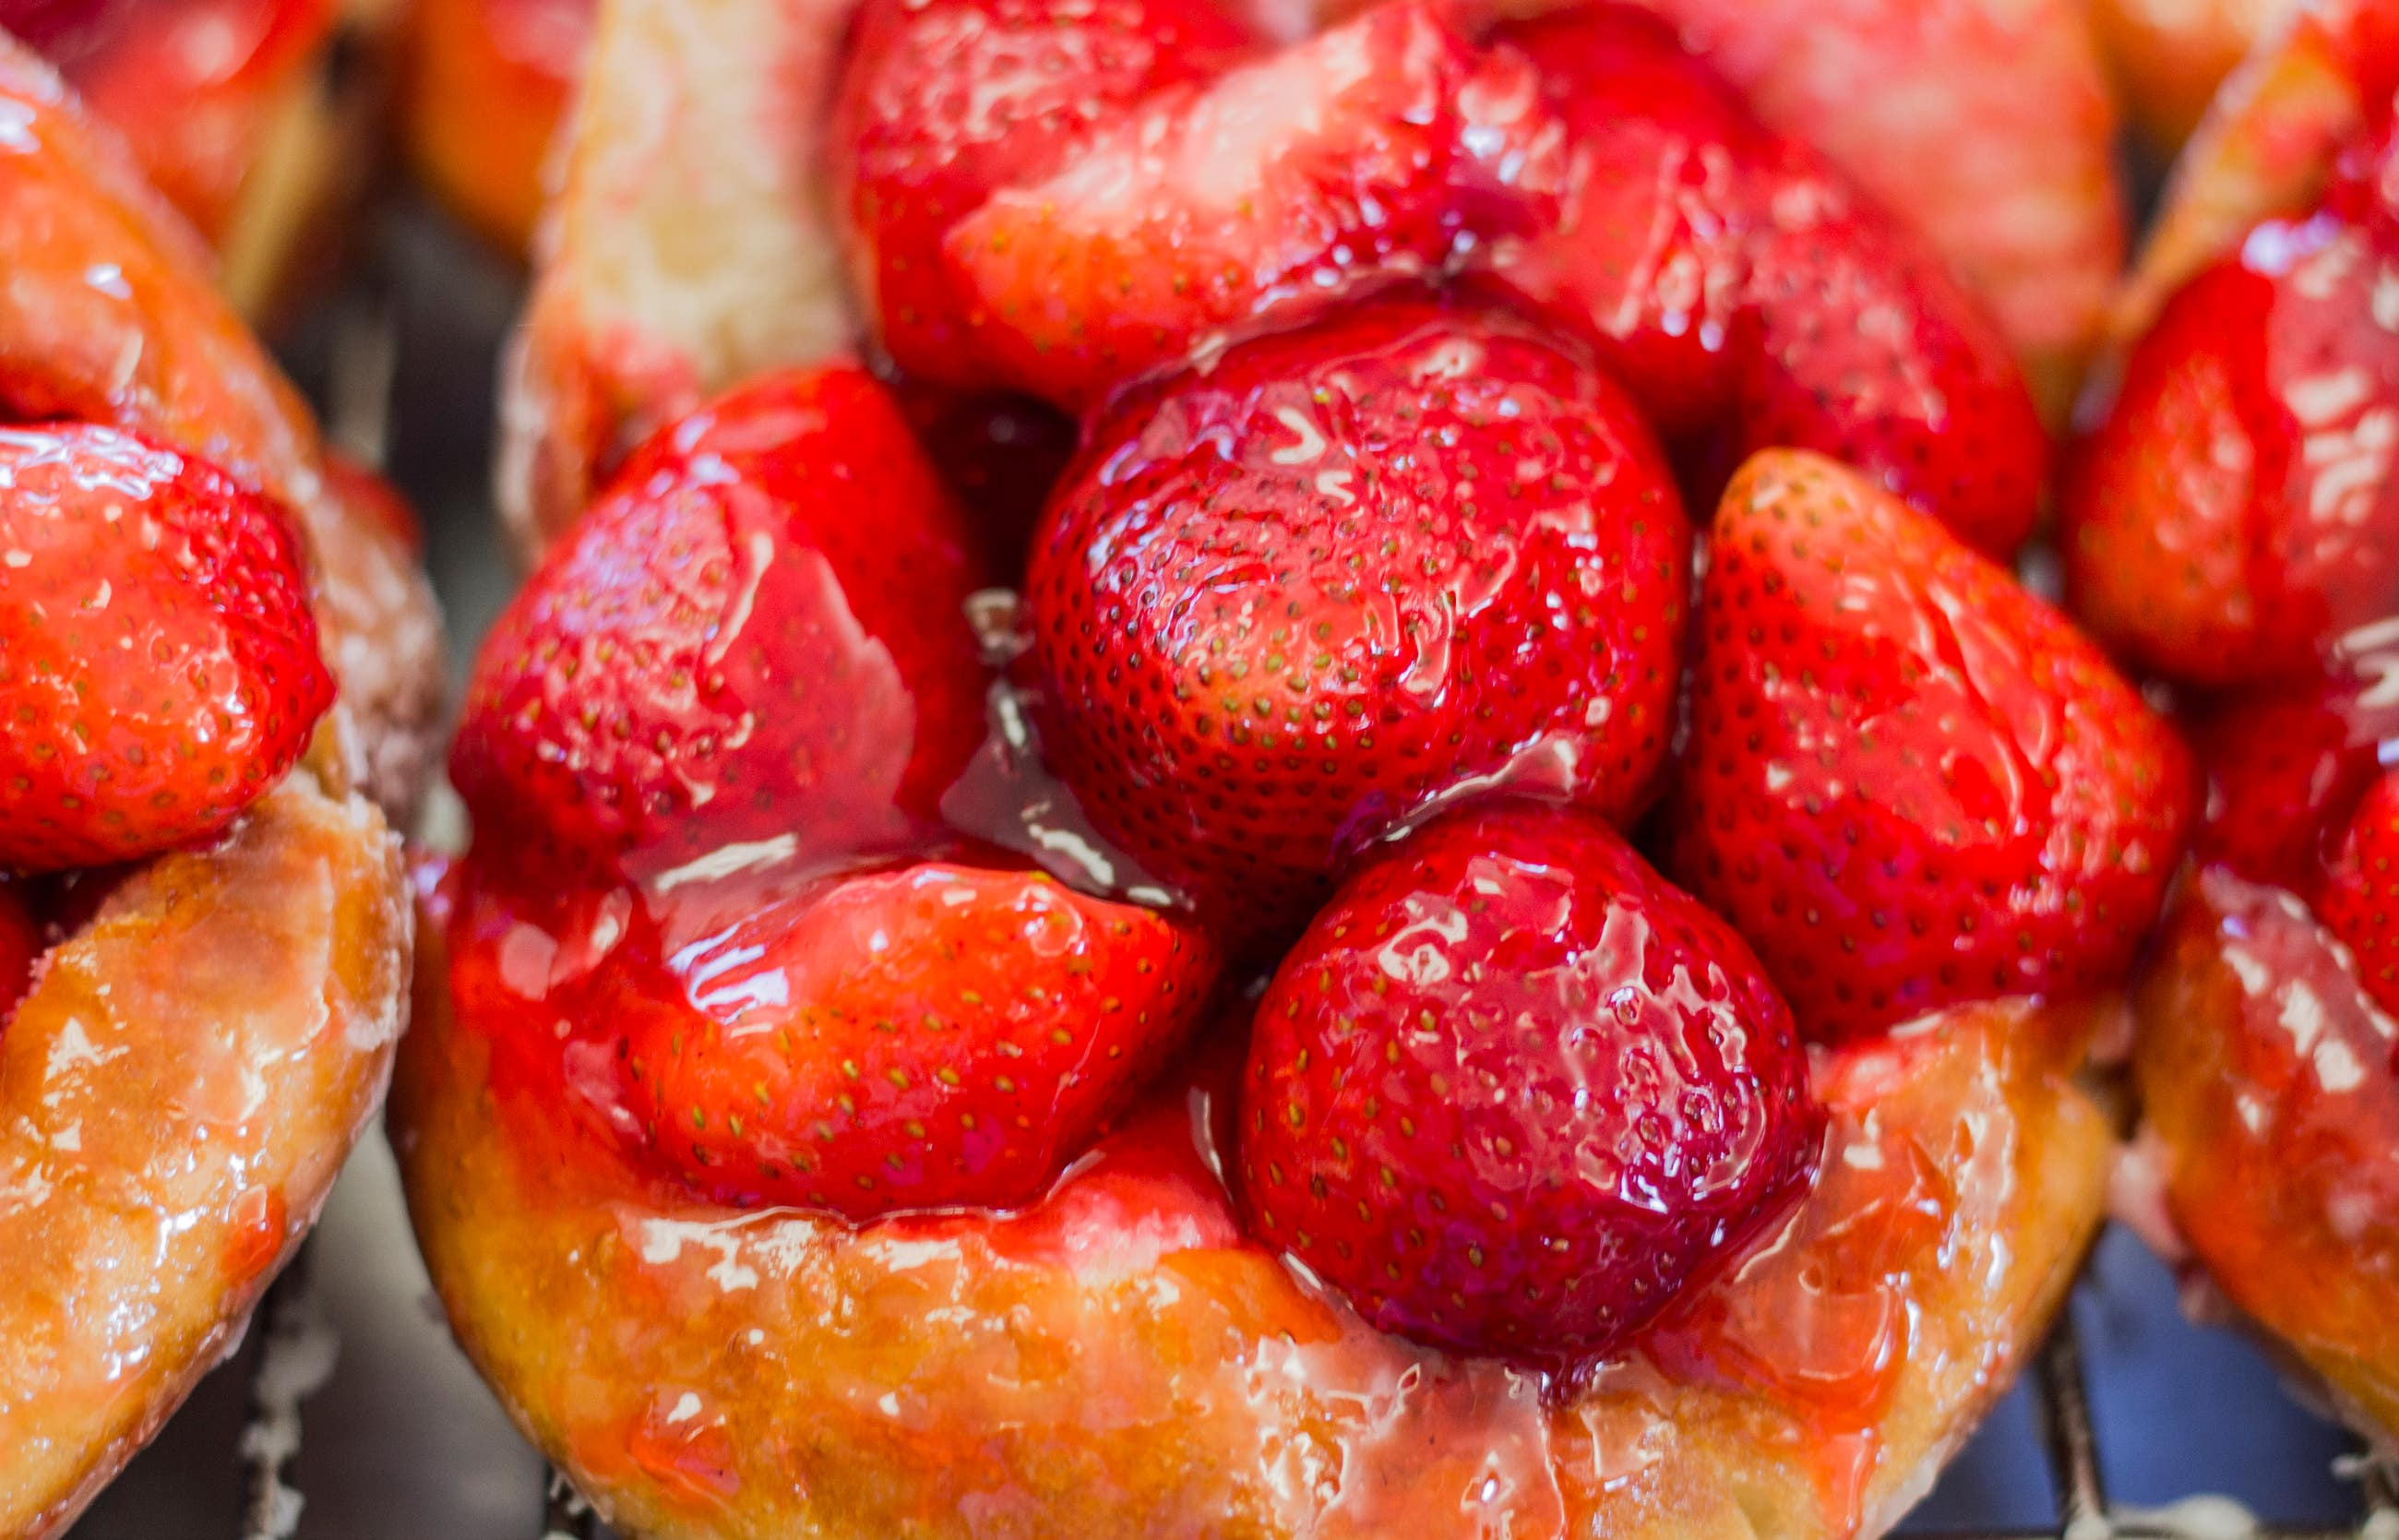 Strawberry Donuts at The Donut Man